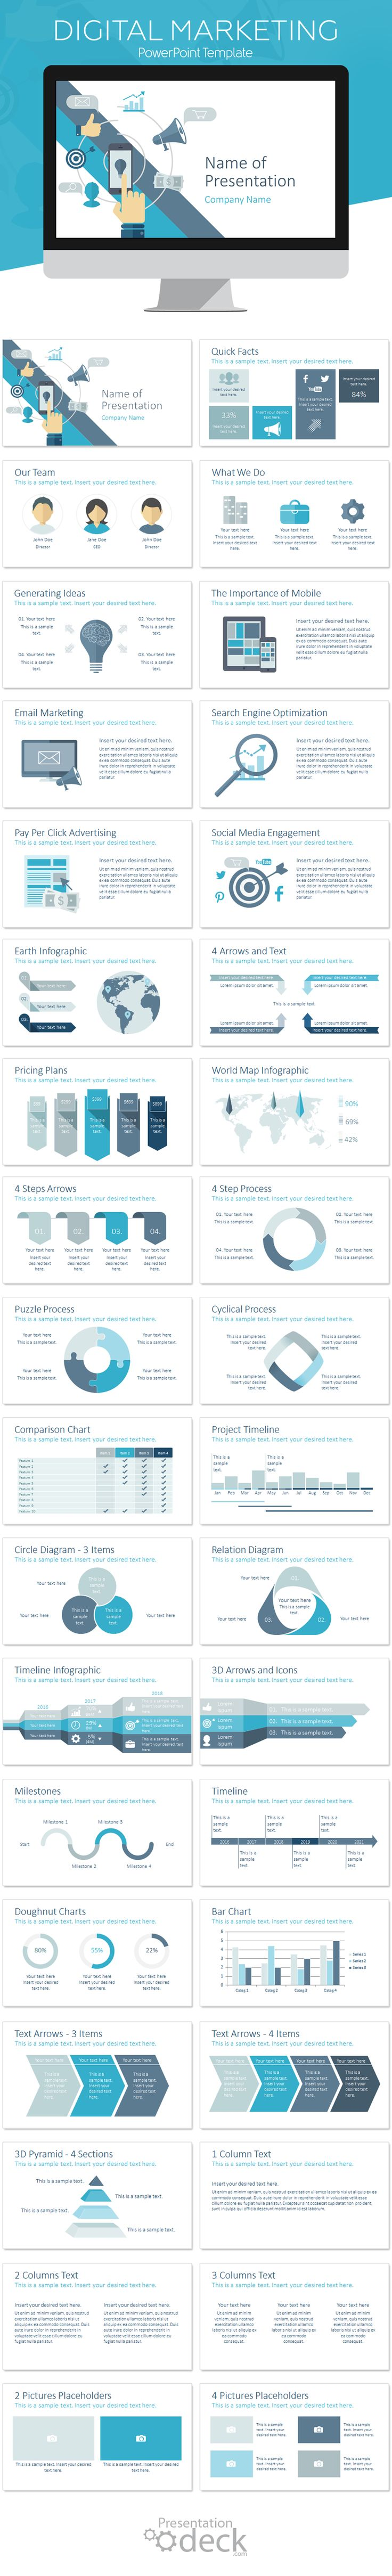 Digital marketing PowerPoint template in flat design style including 36 pre-designed slides. This theme is perfect for digital agencies, for presentations on marketing strategies, SEO, SMM, lead generation, etc. #presentations #business #conversion